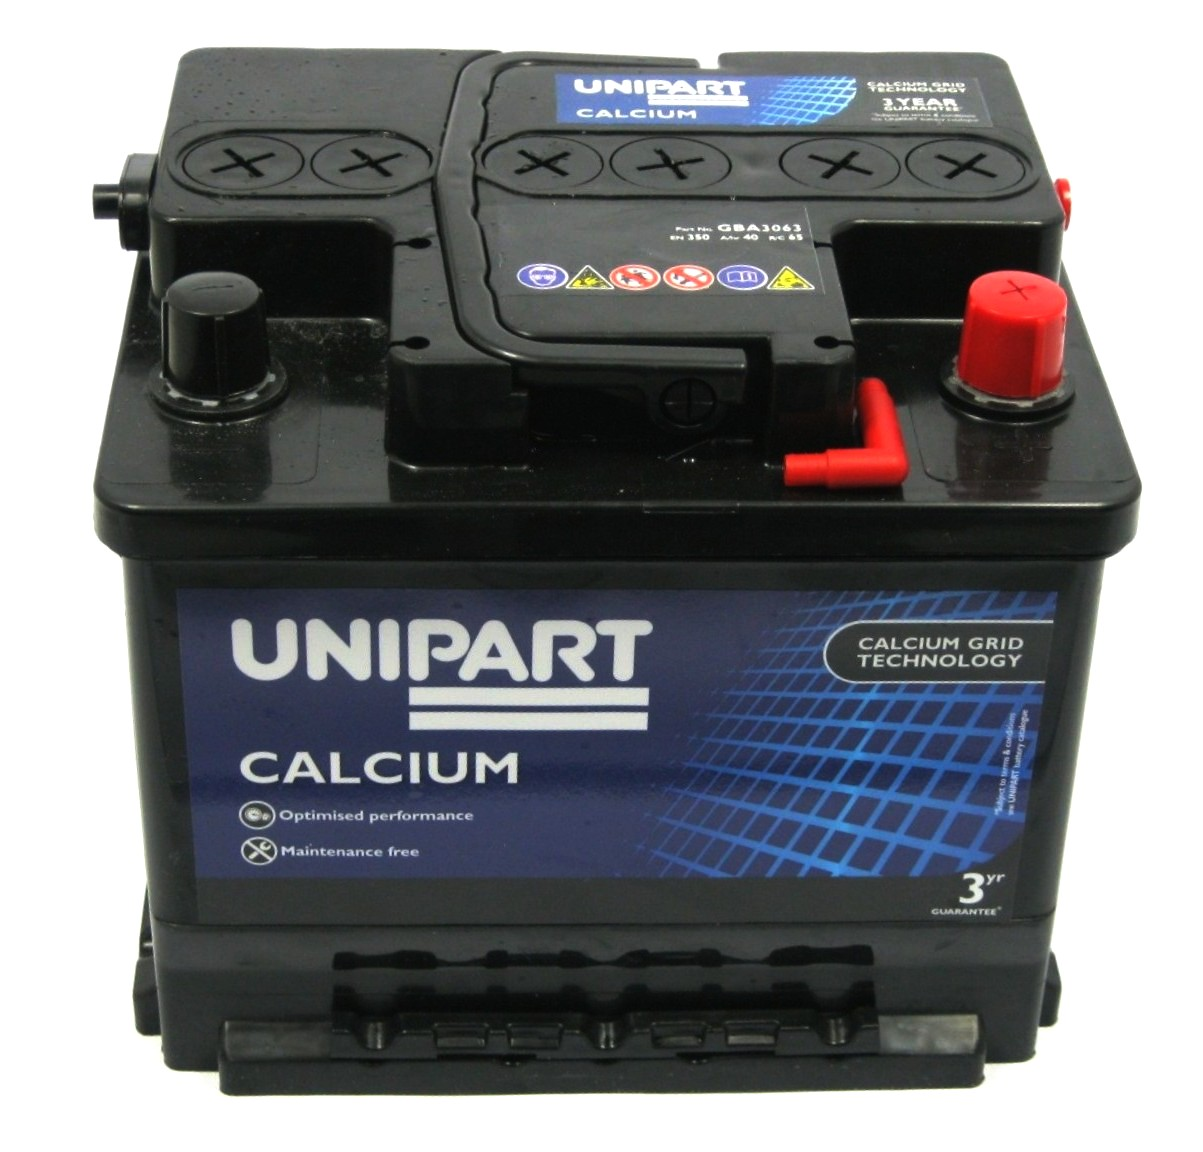 batterie megane 1 genuine unipart car battery renault megane classic 1 4 16v renault megane. Black Bedroom Furniture Sets. Home Design Ideas